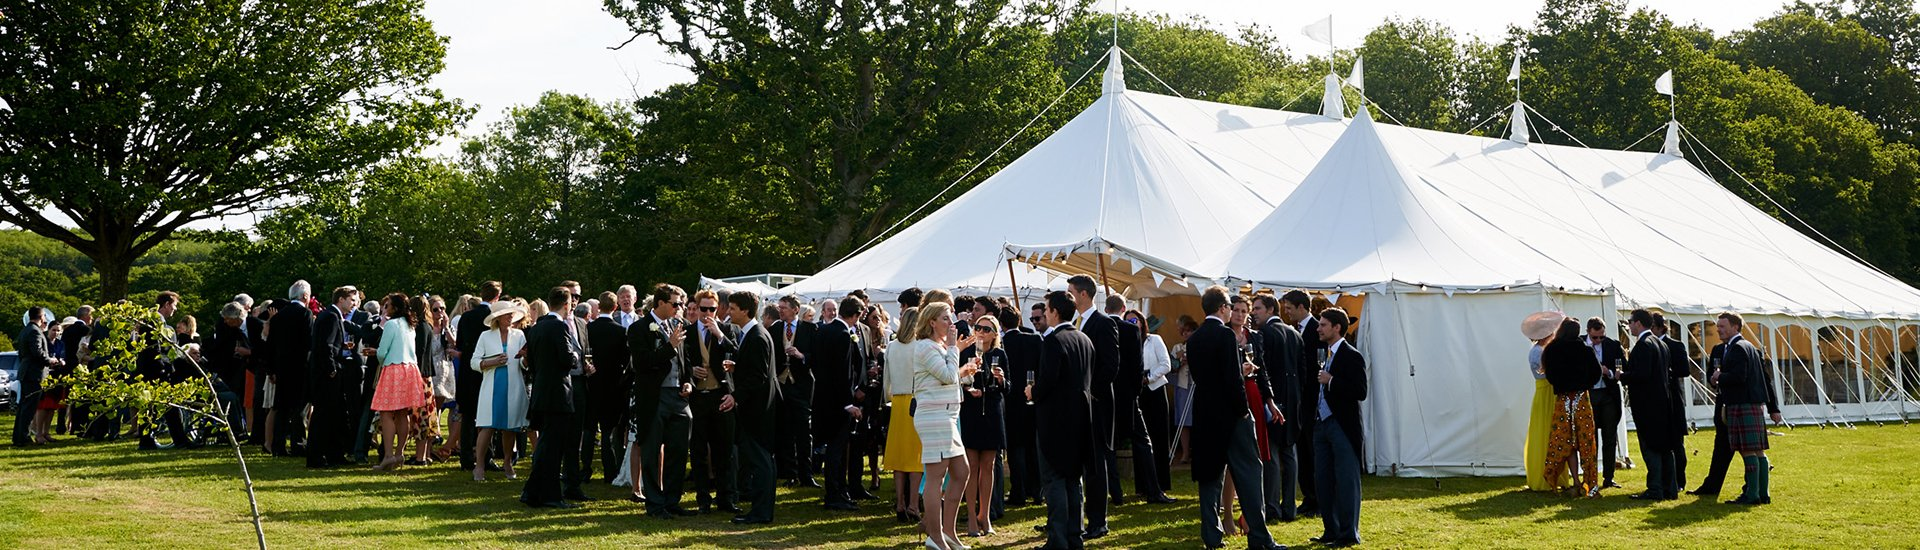 Wigwam Marquees traditional canvas party marquee hire Surrey round and Round Ended luxury marquees 7